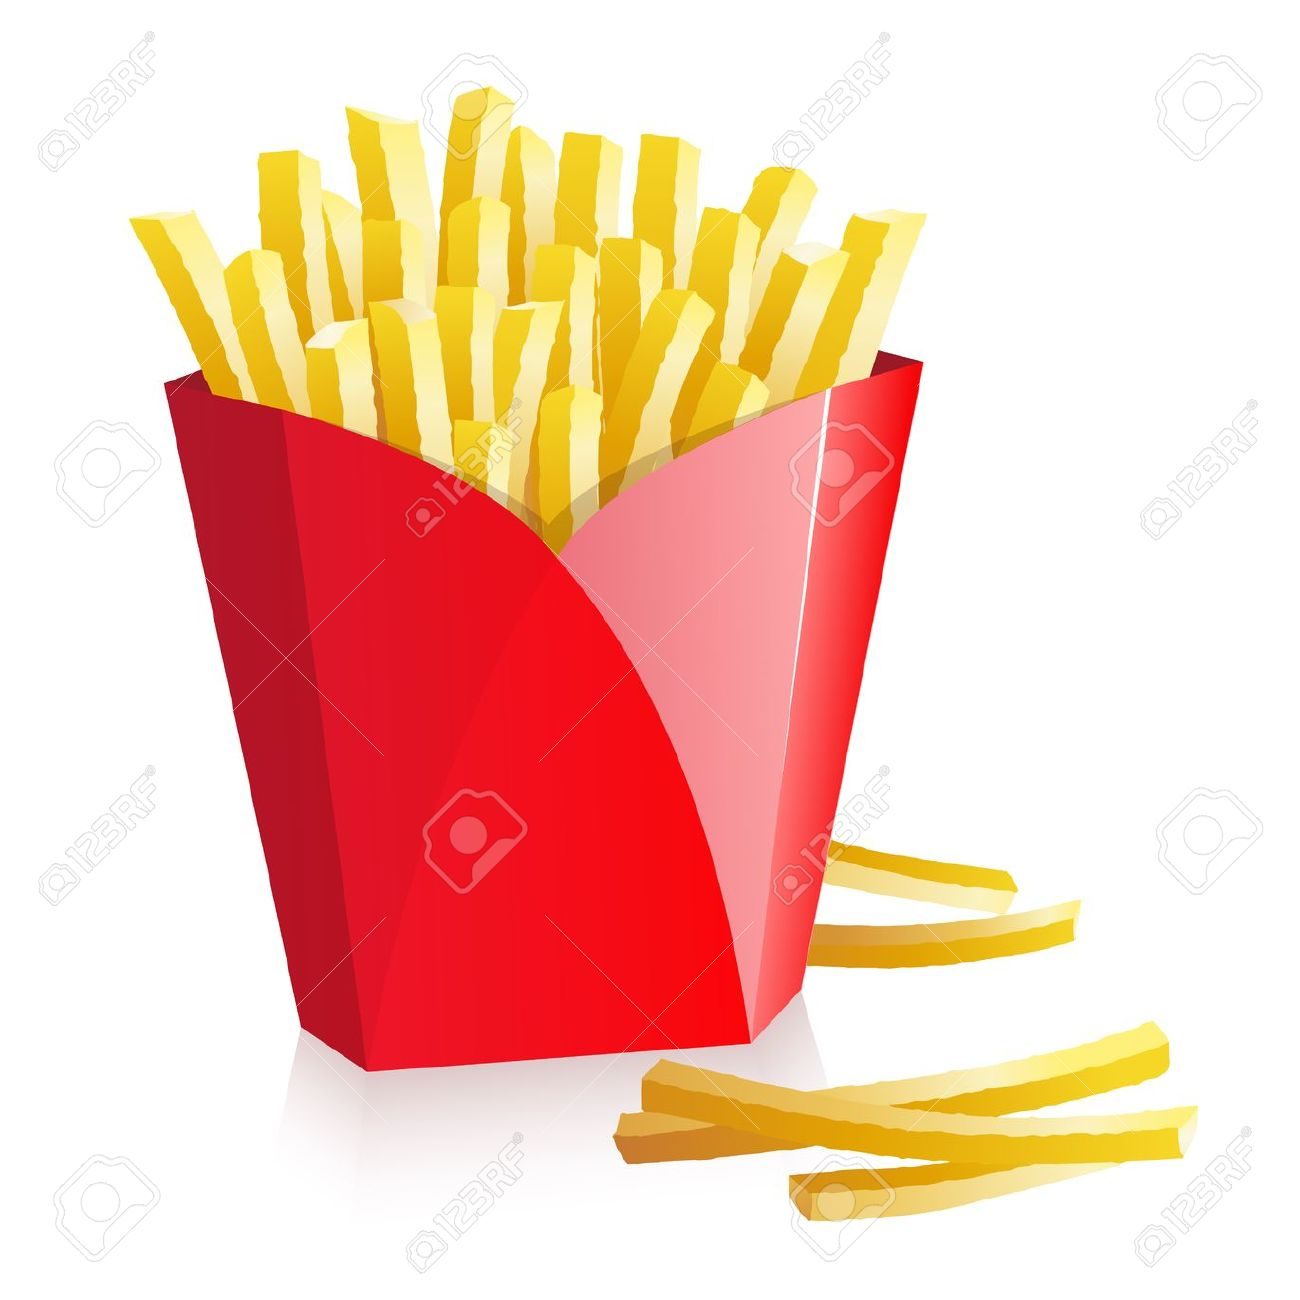 French Fries In A Red Box Royalty Free Cliparts, Vectors, And.